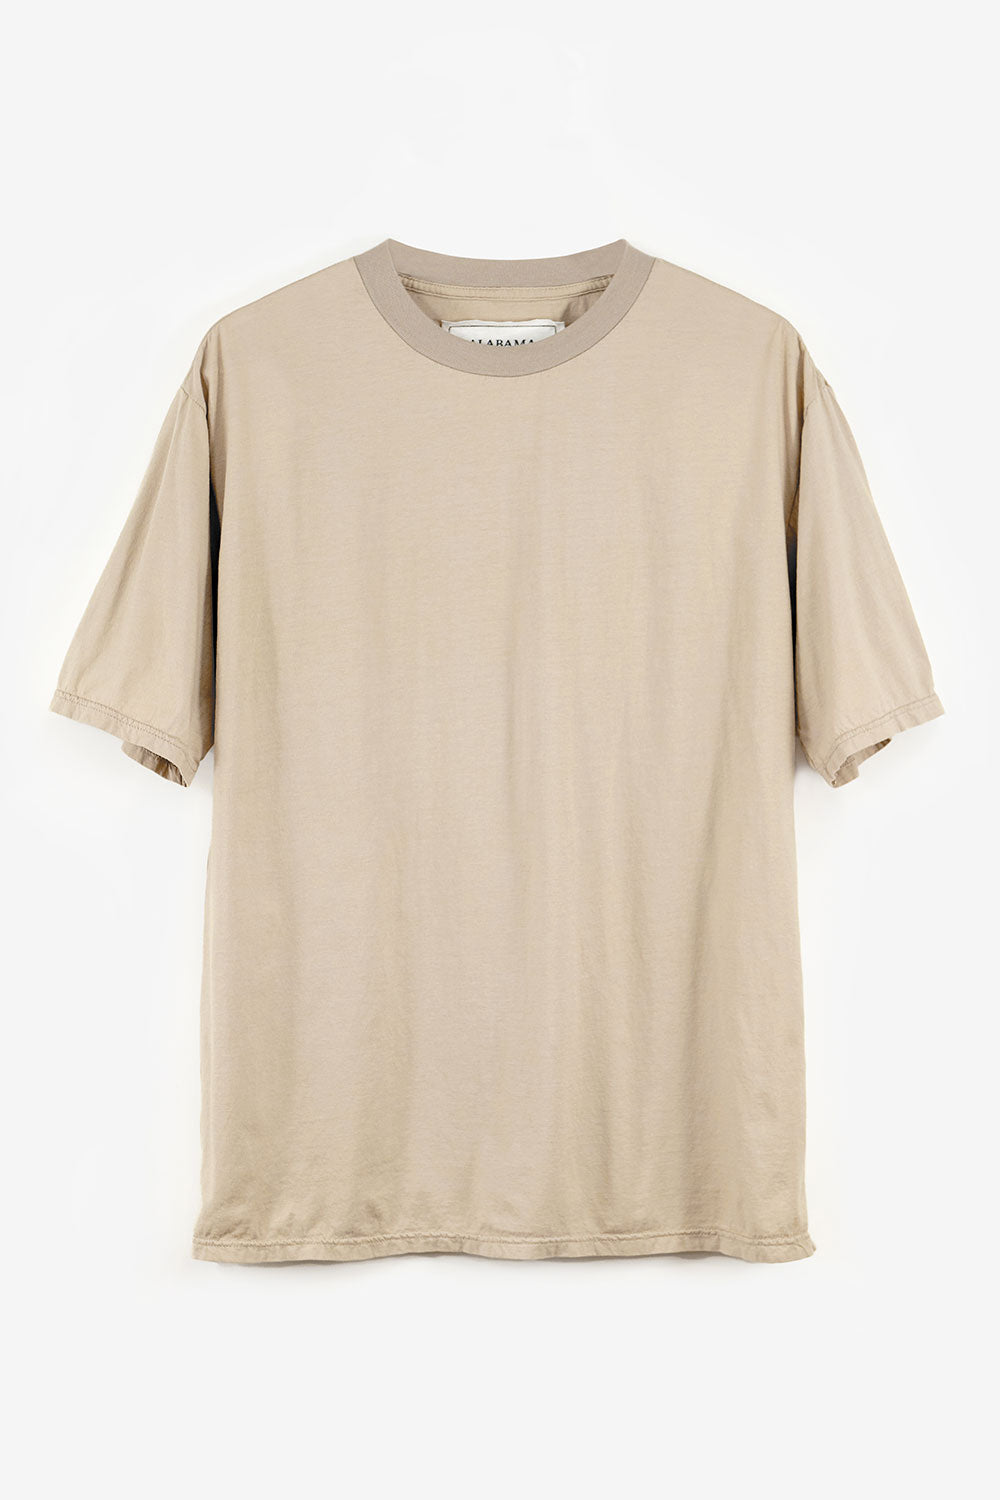 Alabama Chanin The Boyfriend Tee Oversized Organic Cotton T-Shirt in Tan